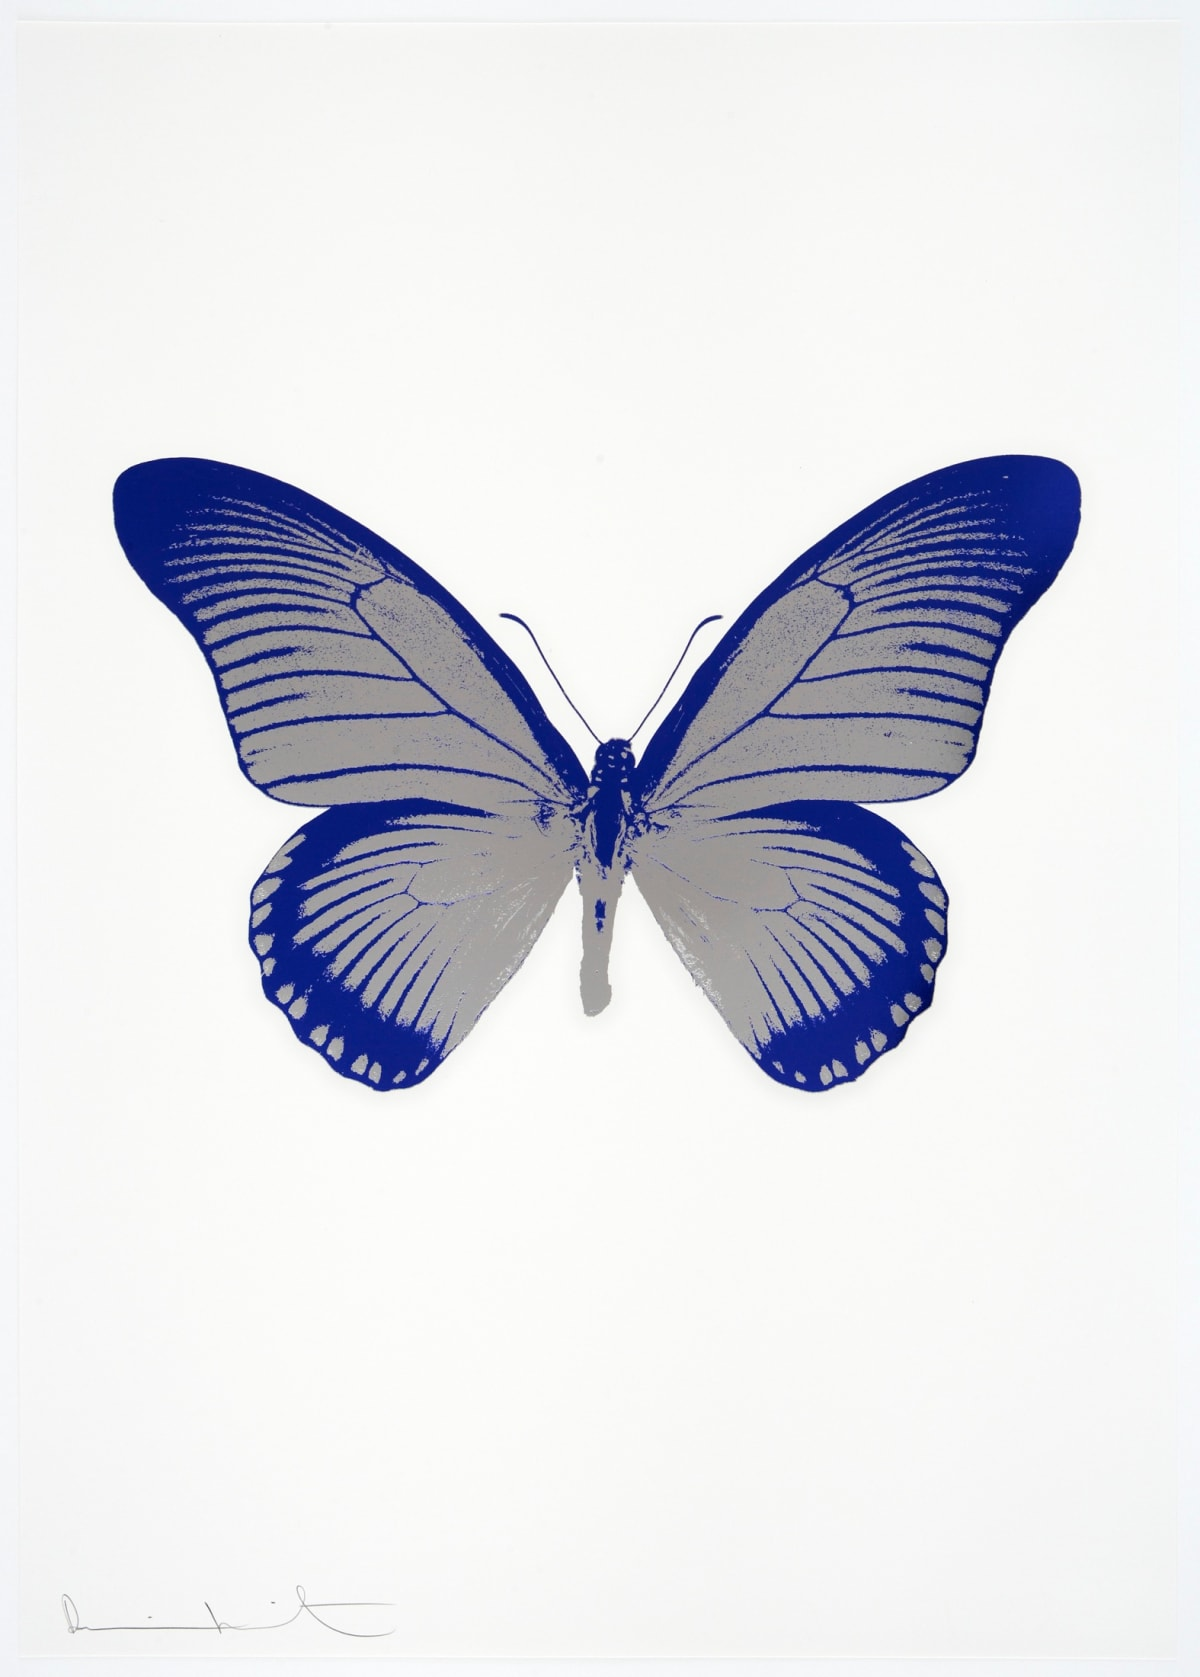 Damien Hirst The Souls IV - Silver Gloss/Westminster Blue, 2010 2 colour foil block on 300gsm Arches 88 archival paper. Signed and numbered. Published by Paul Stolper and Other Criteria 72 x 51cm OC7988 / 1418-11 Edition of 15